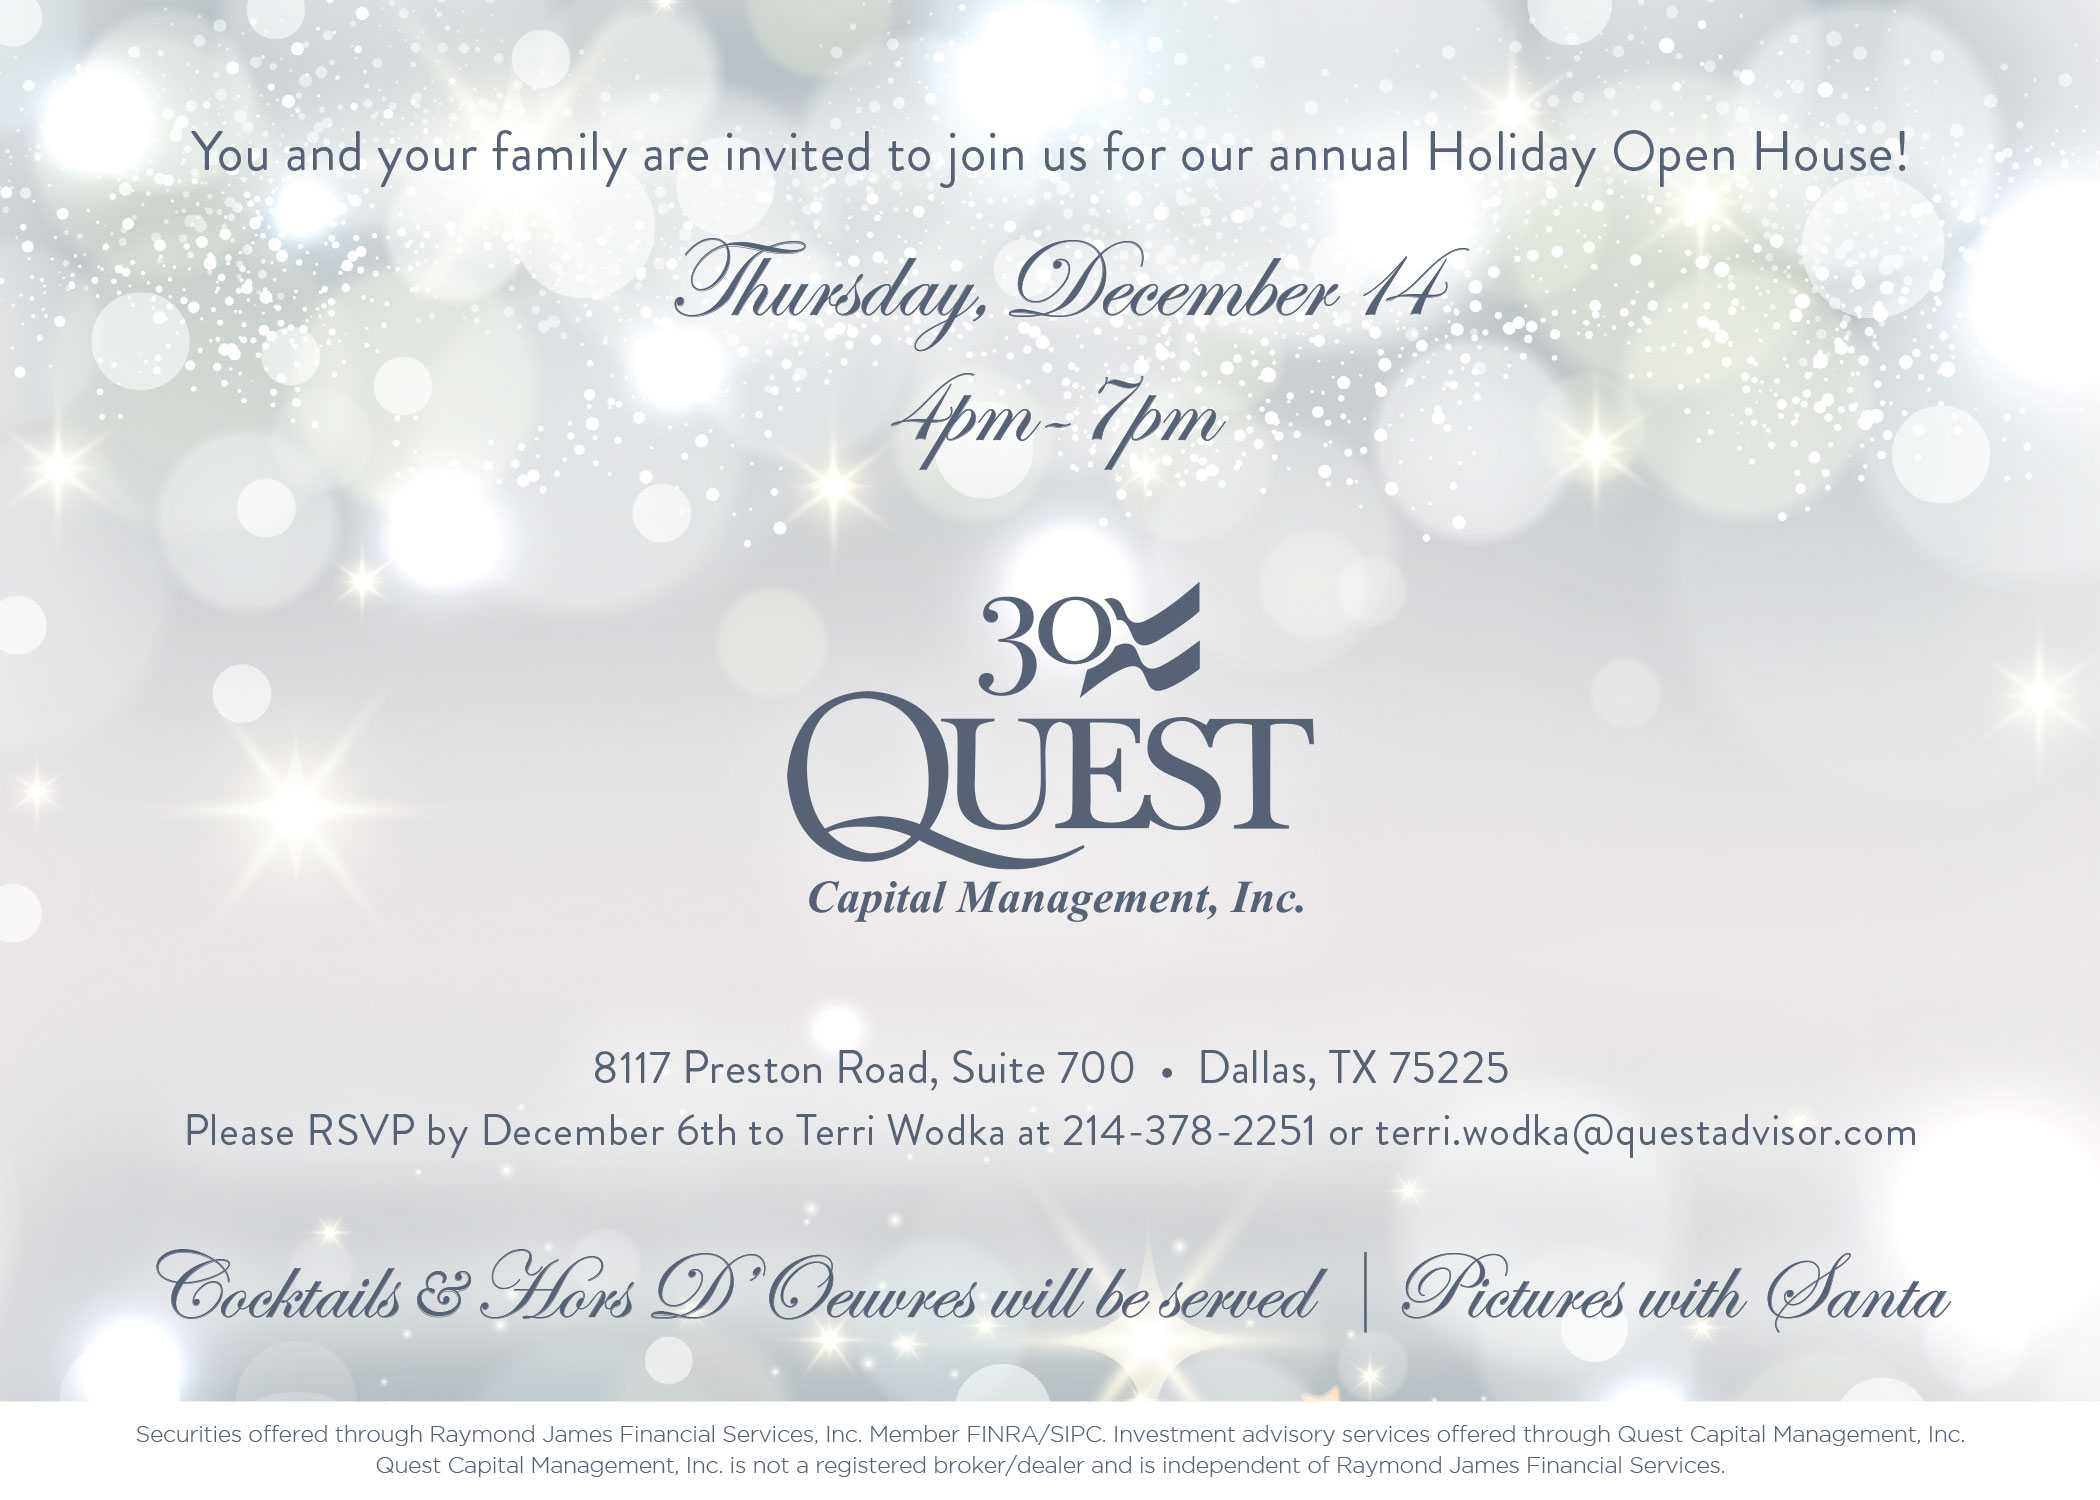 Holiday Open House Invite Website 2017